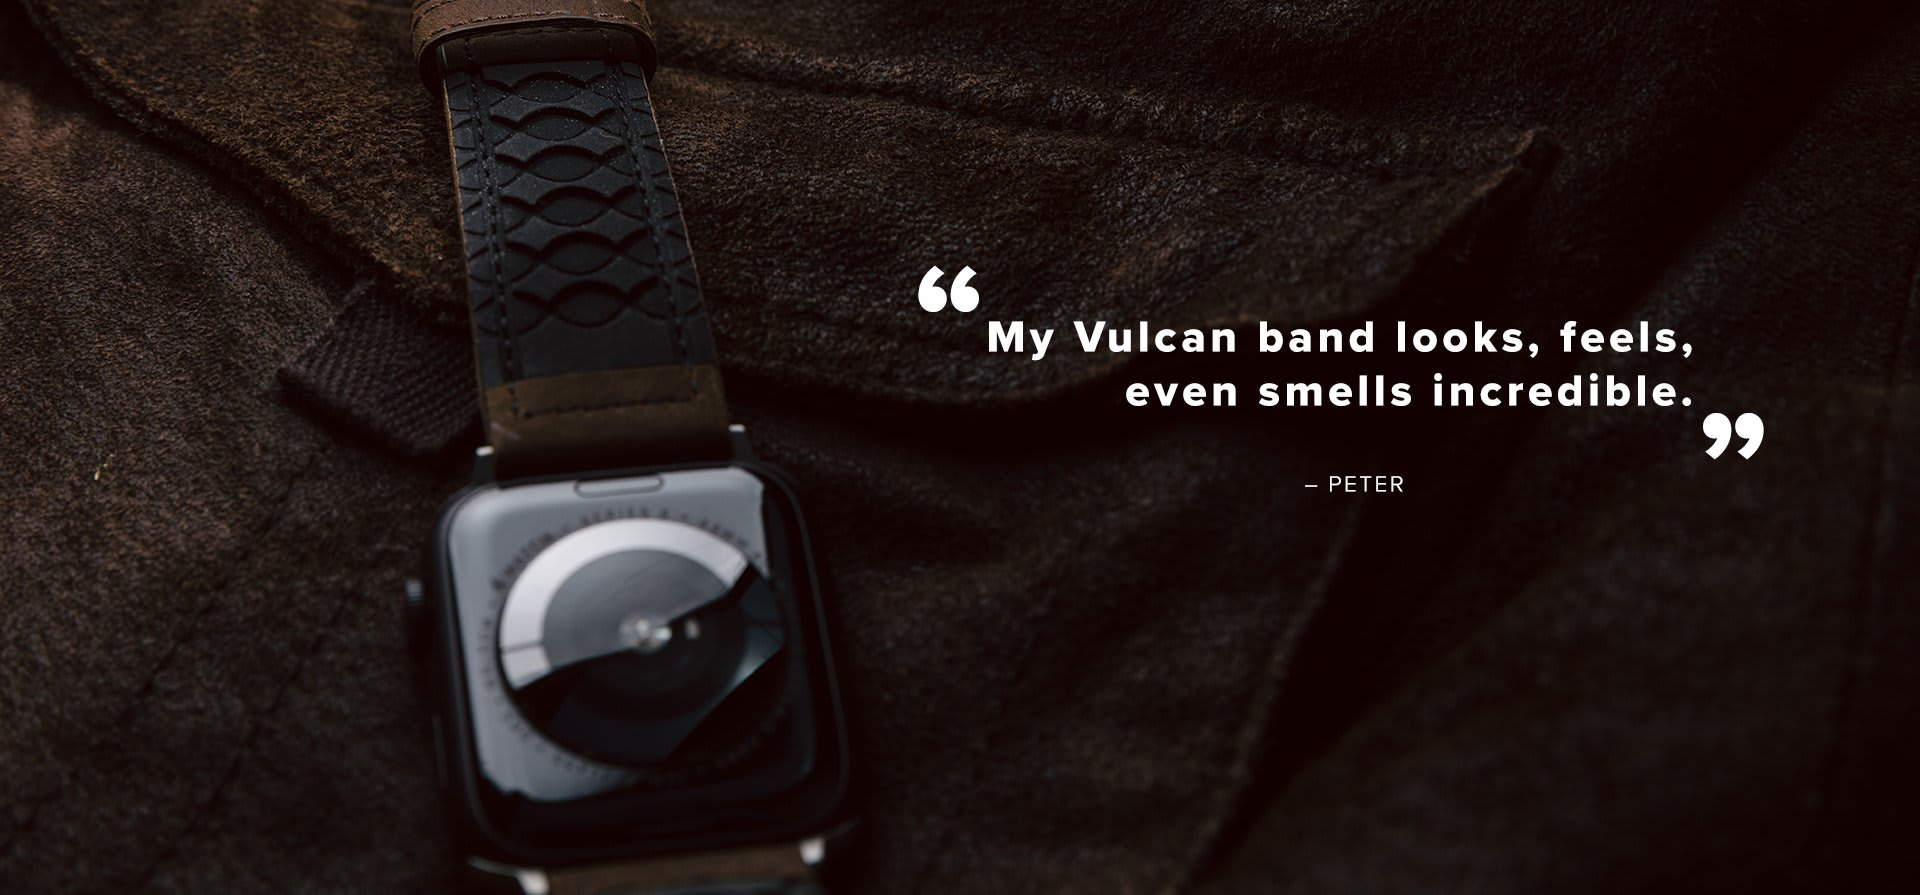 """My vulcan band looks, feels, even smells incredible."" - Peter"